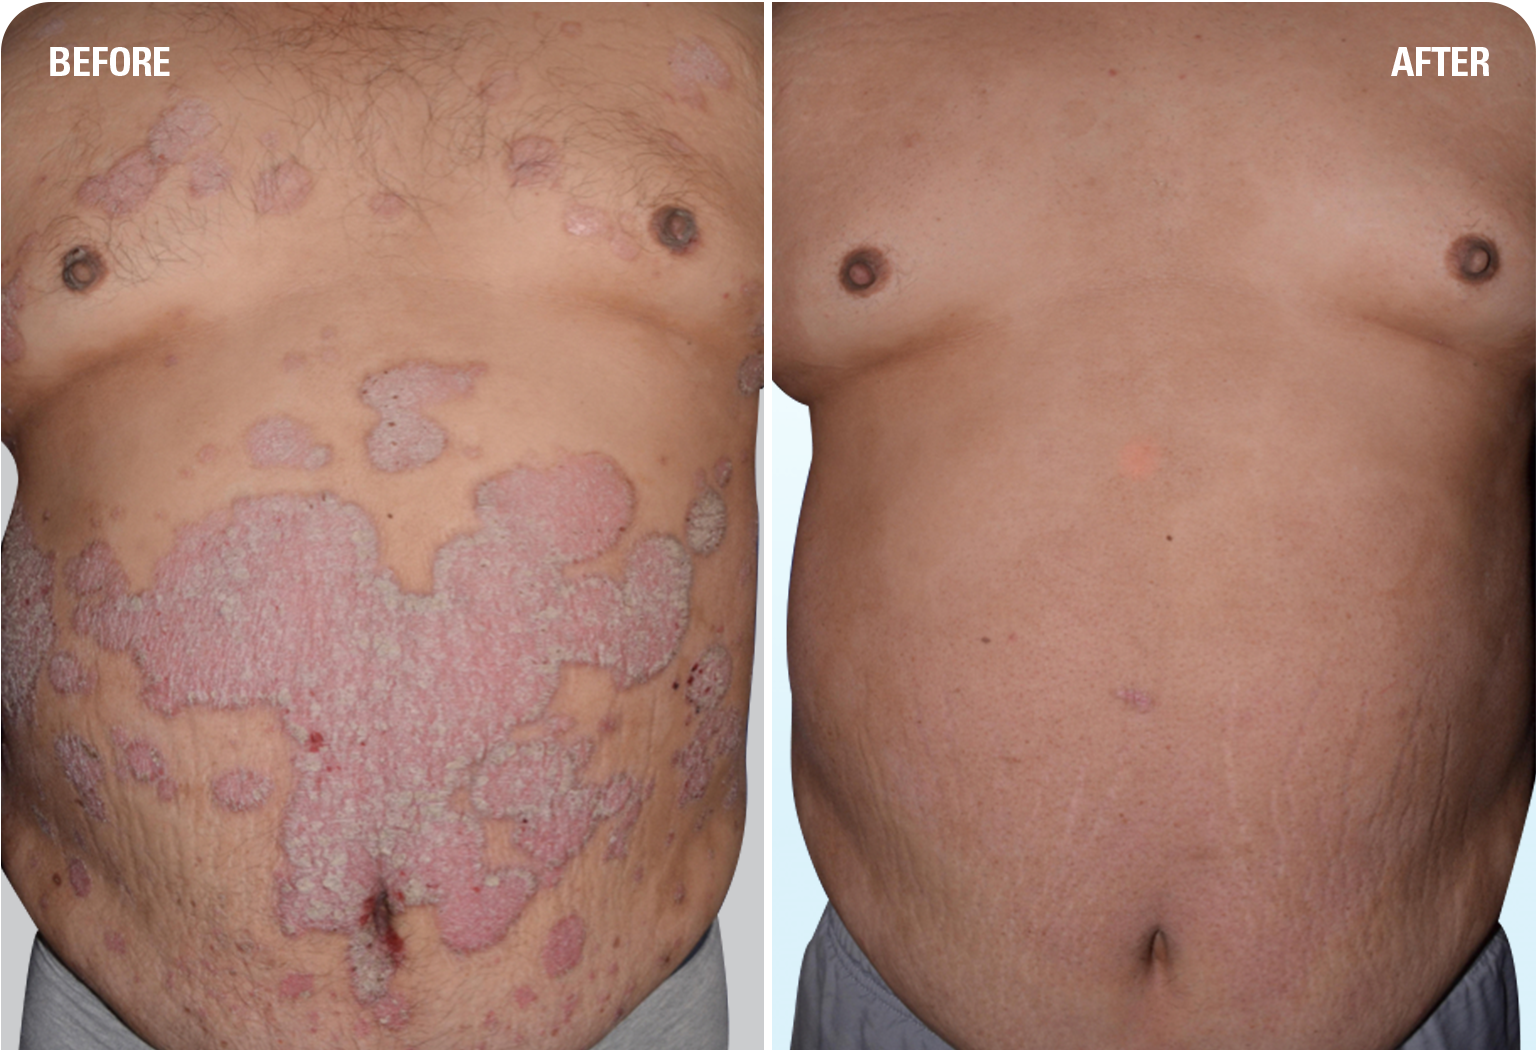 SKYRIZI before and after: one patient's experience with plaque psoriasis clearing on chest